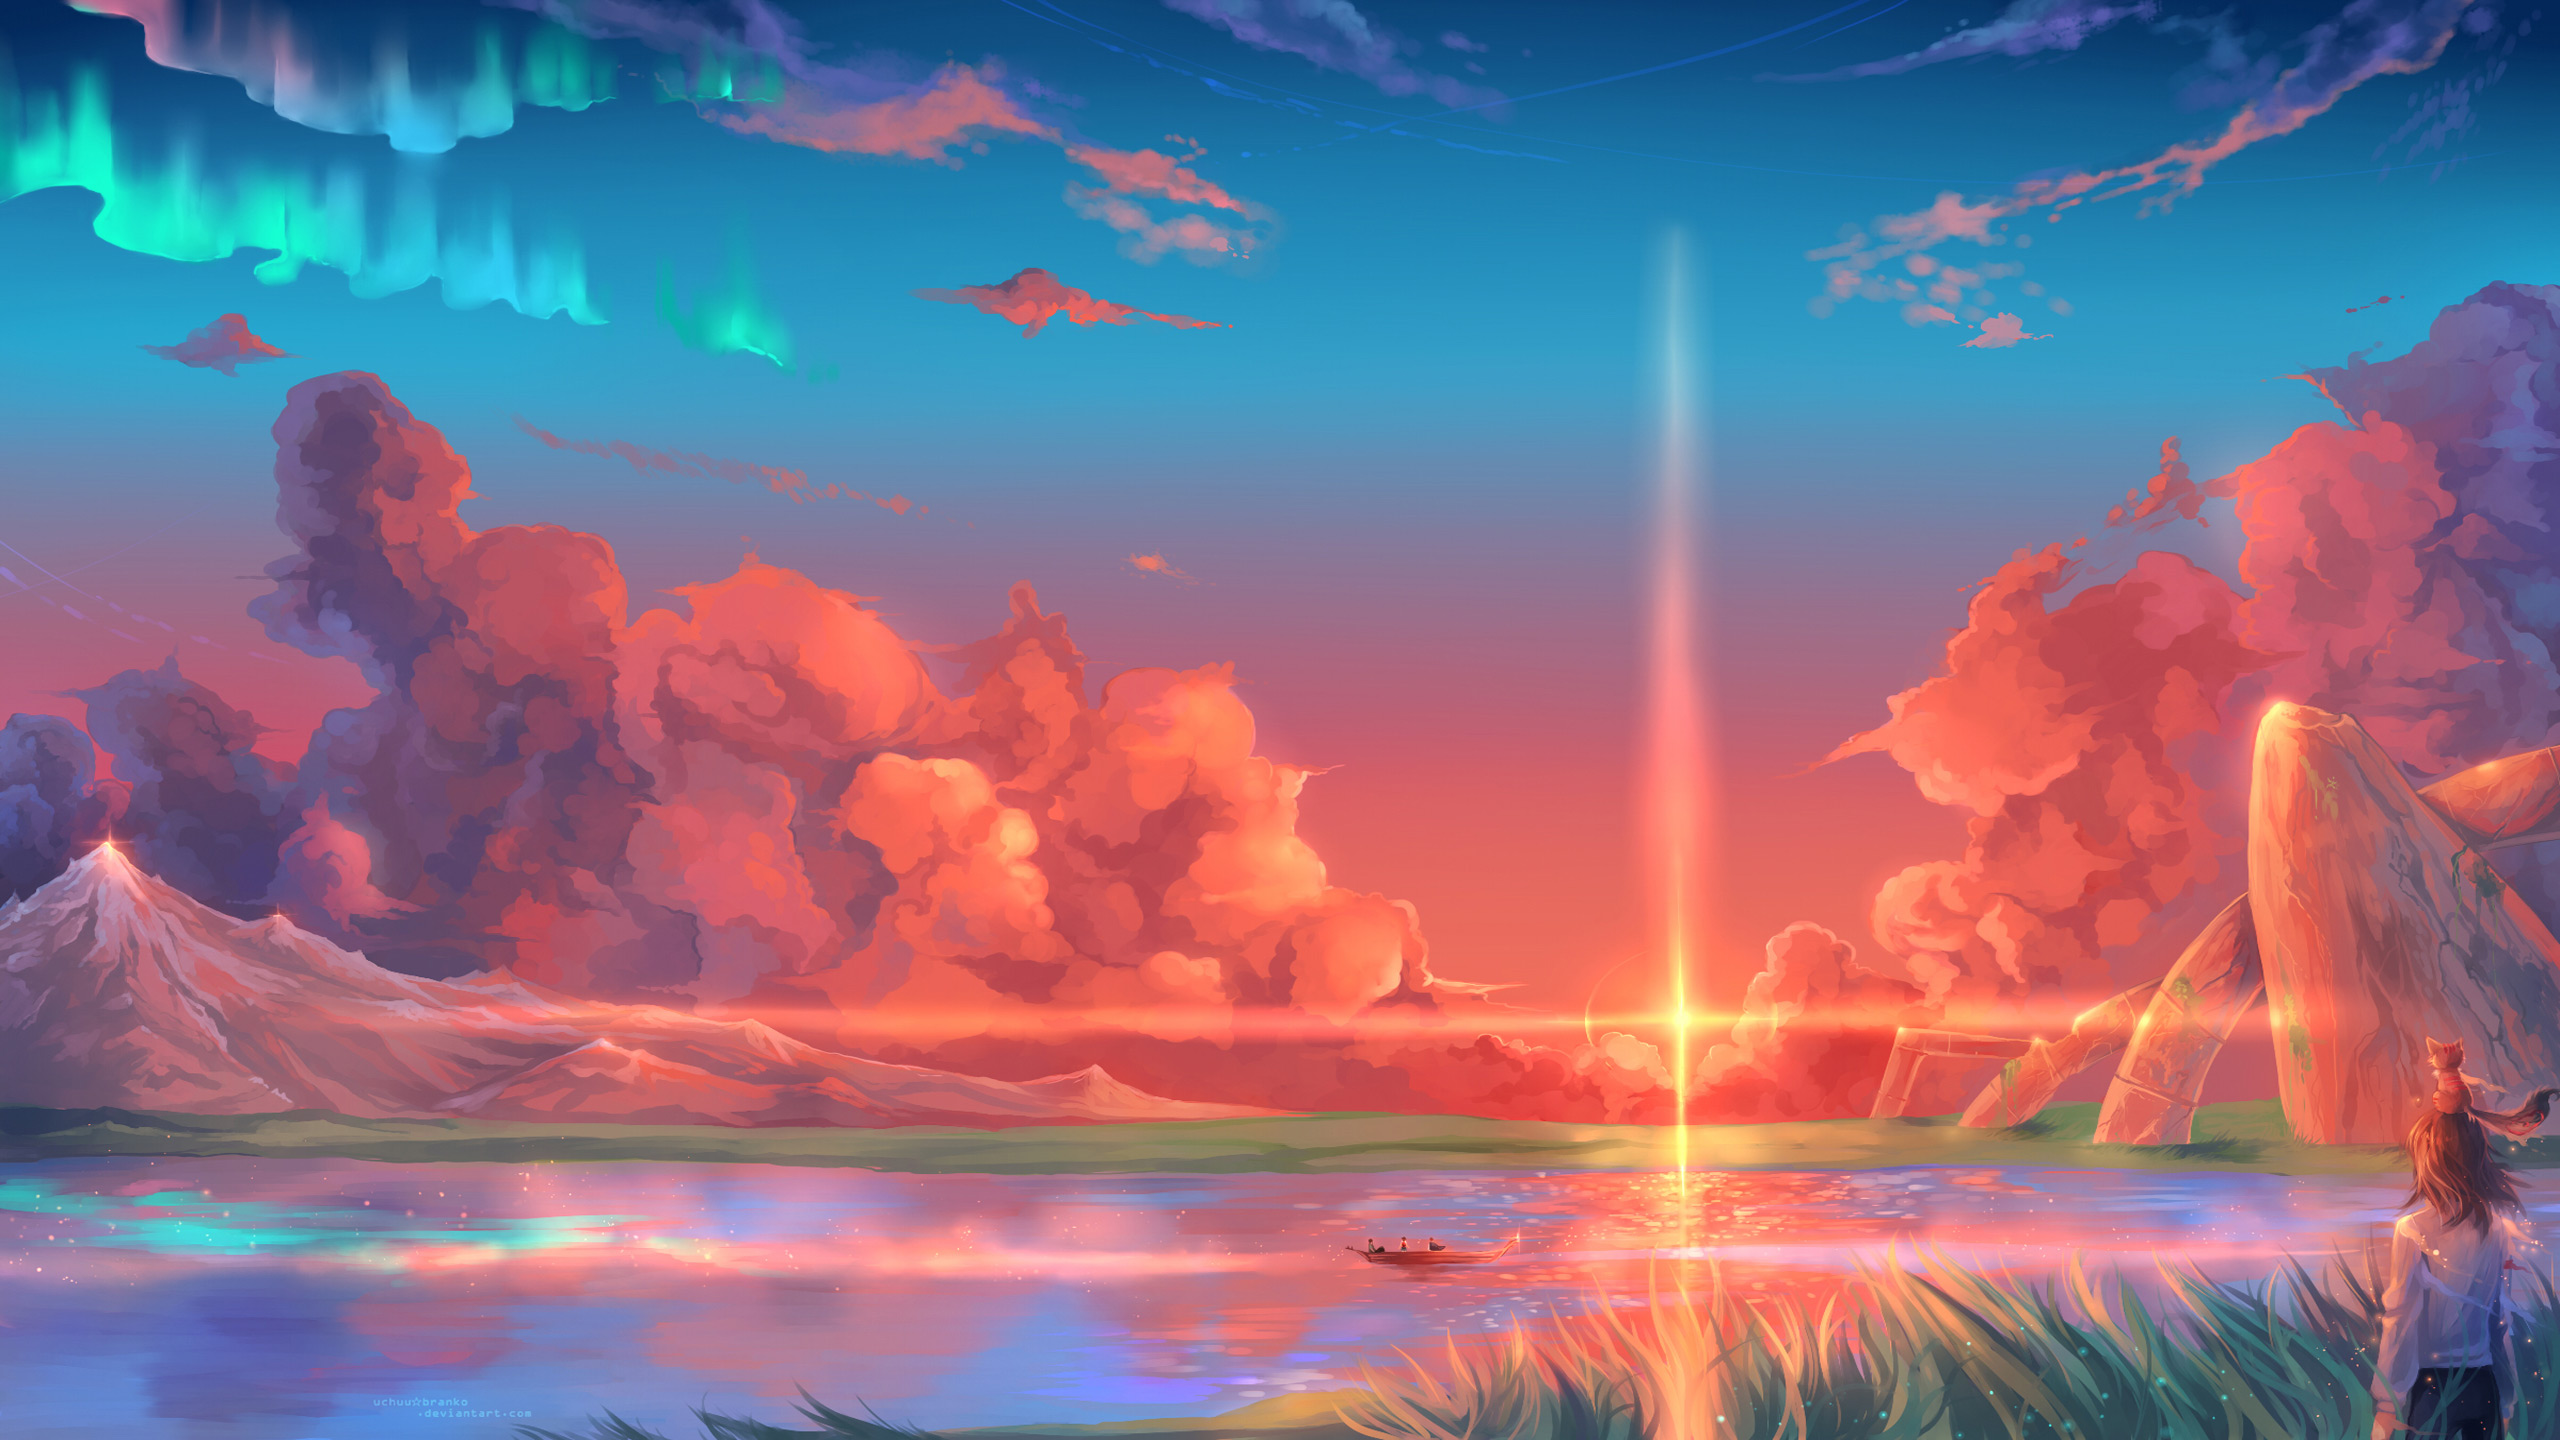 0 4599 anime fantasy landscape wallpapers for android for aesthetic